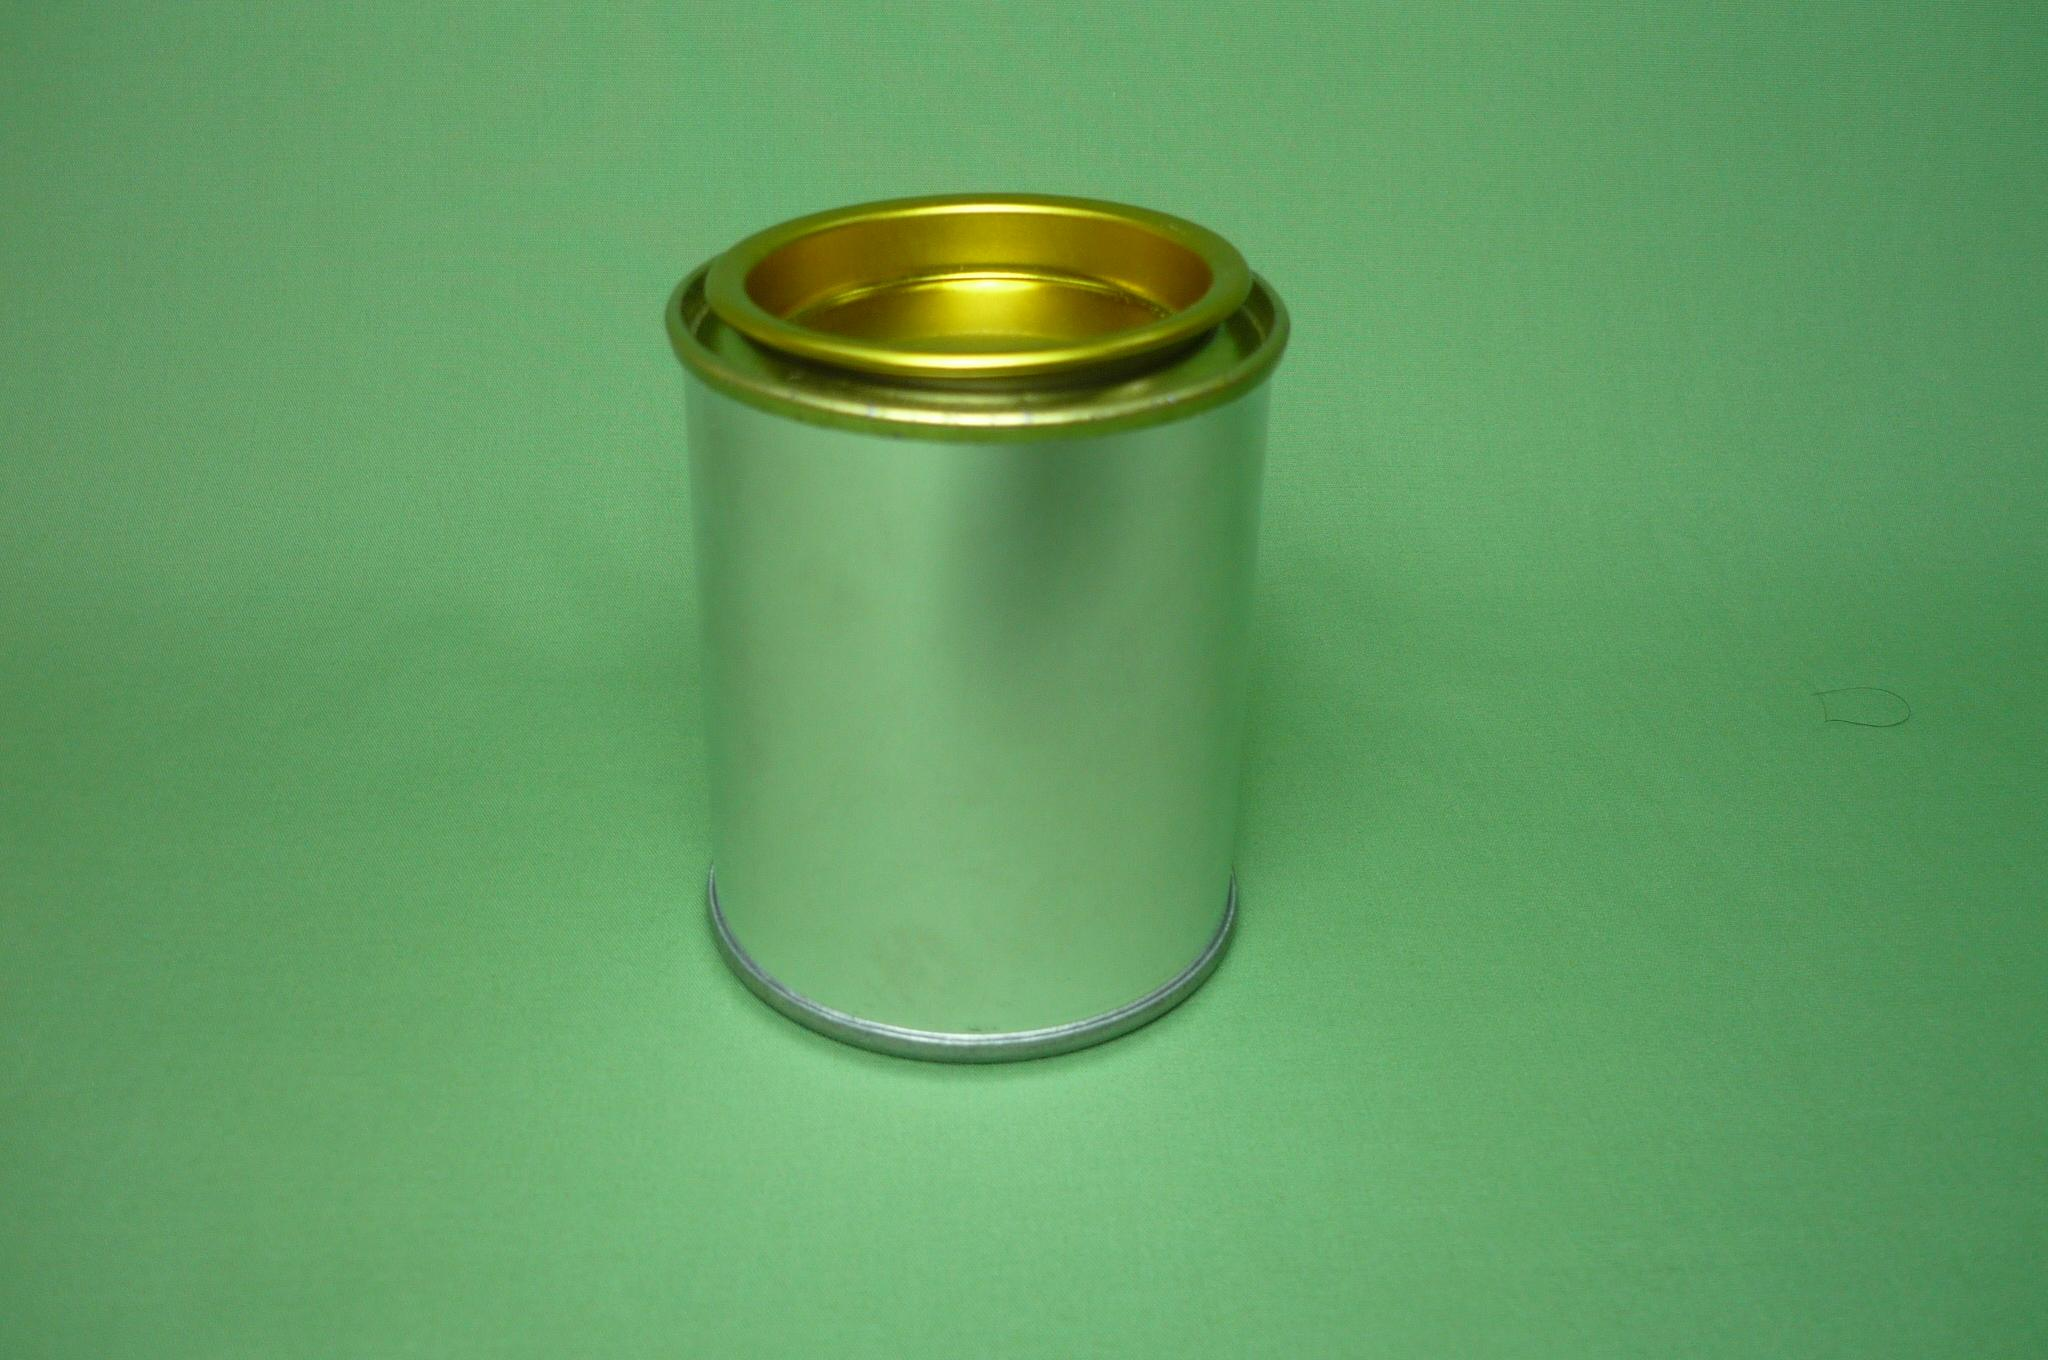 Baking Powder Cans